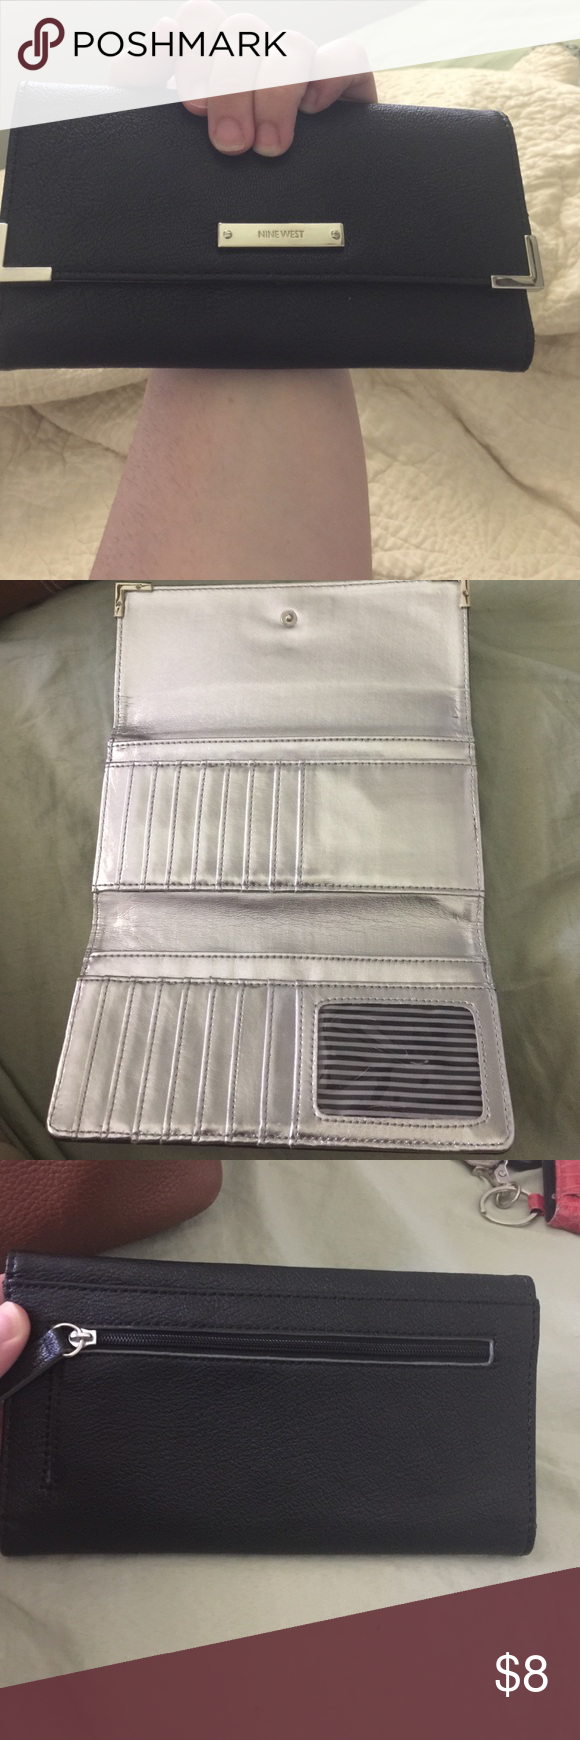 Nine West Wallet Brand New! Nine West black wallet! It's beautiful with the silver accents on the outside and then silver interior and strips. Measurements: 7 1/2 long by 3 7/8 inches tall. 💄Price FIRM unless bundled💄 Nine West Bags Wallets